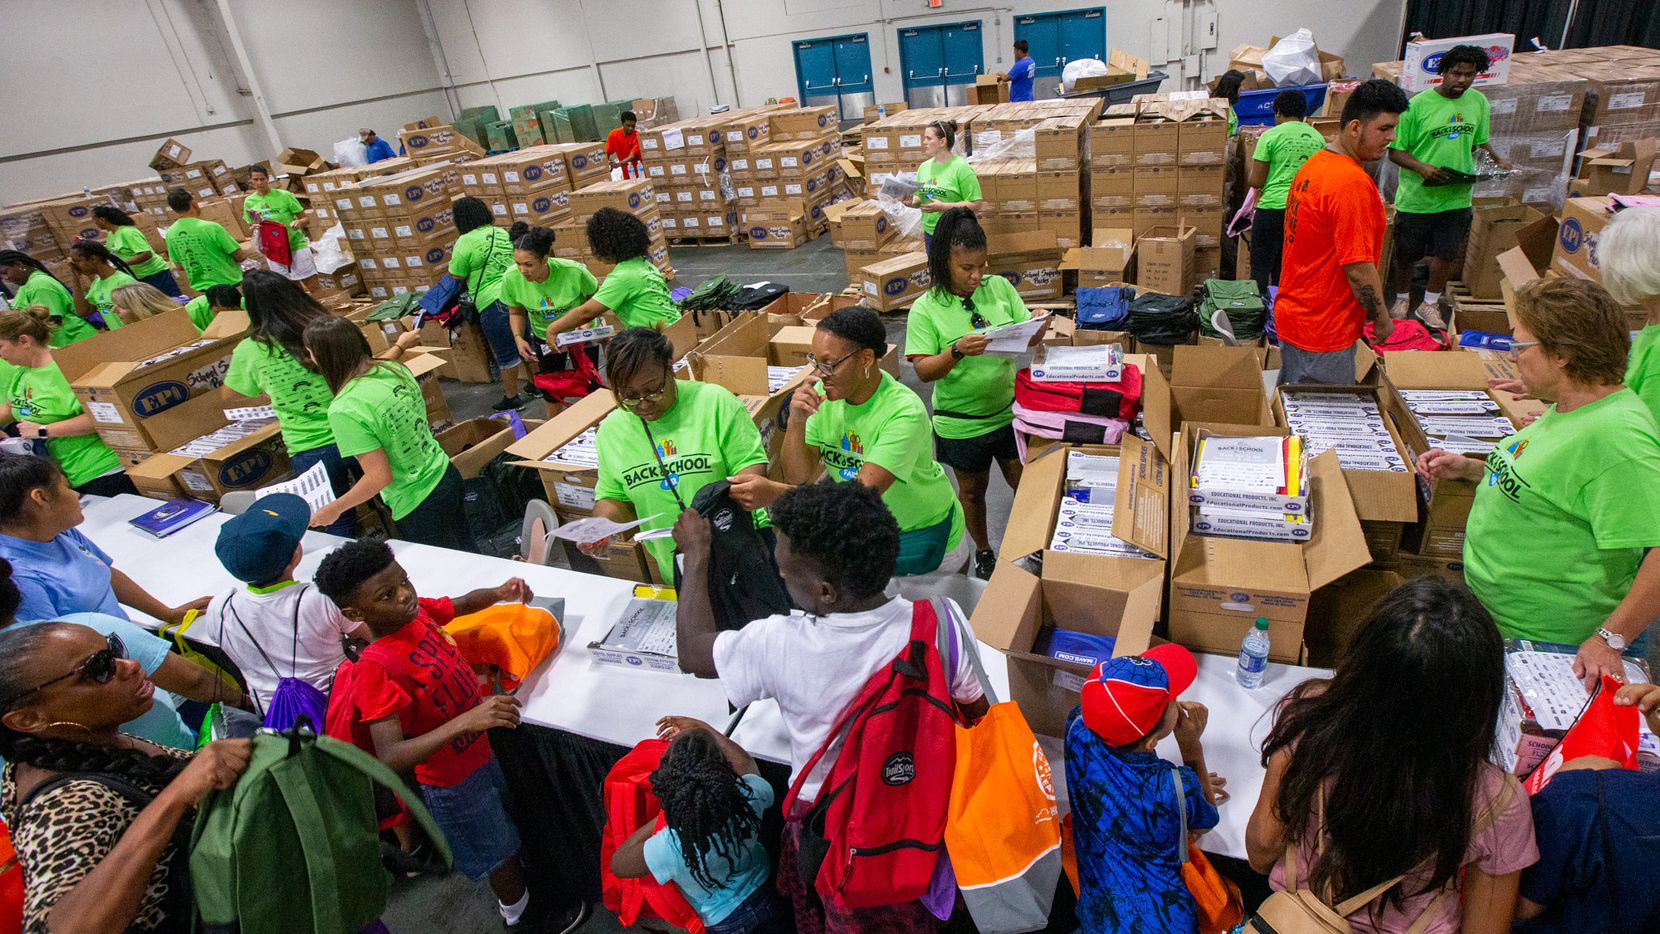 Families waited in line to receive free backpacks and school supplies during the 23rd annual Mayor's Back to School Fair at Fair Park Centennial Hall in Dallas on Aug. 2, 2019.